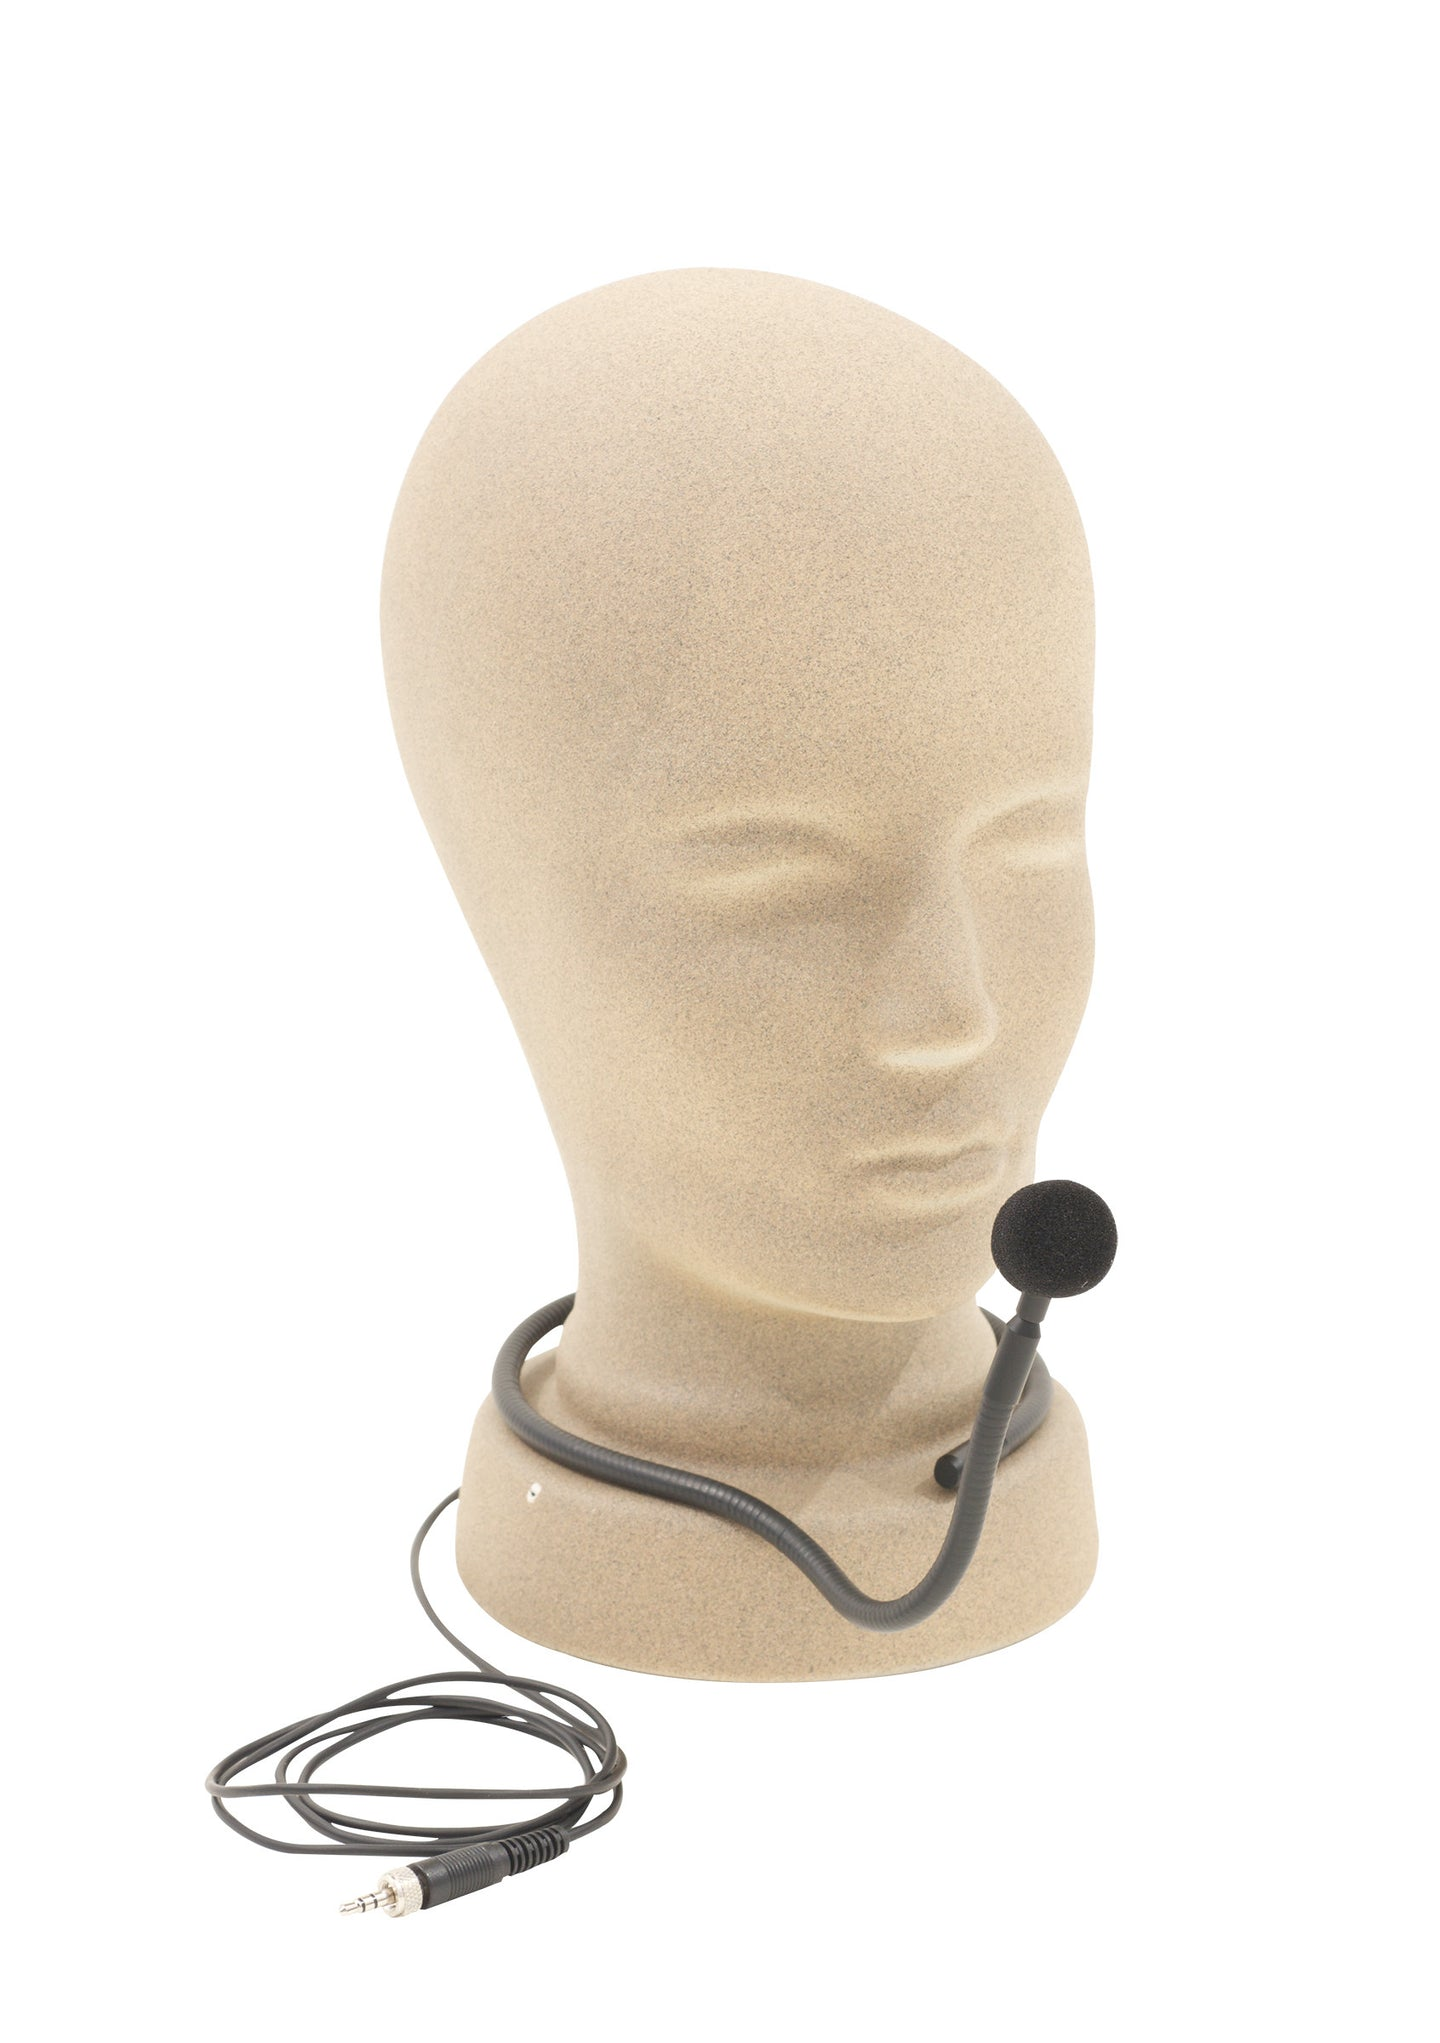 Anchor Audio Collar Microphone, CM-60 - Audio Leaders